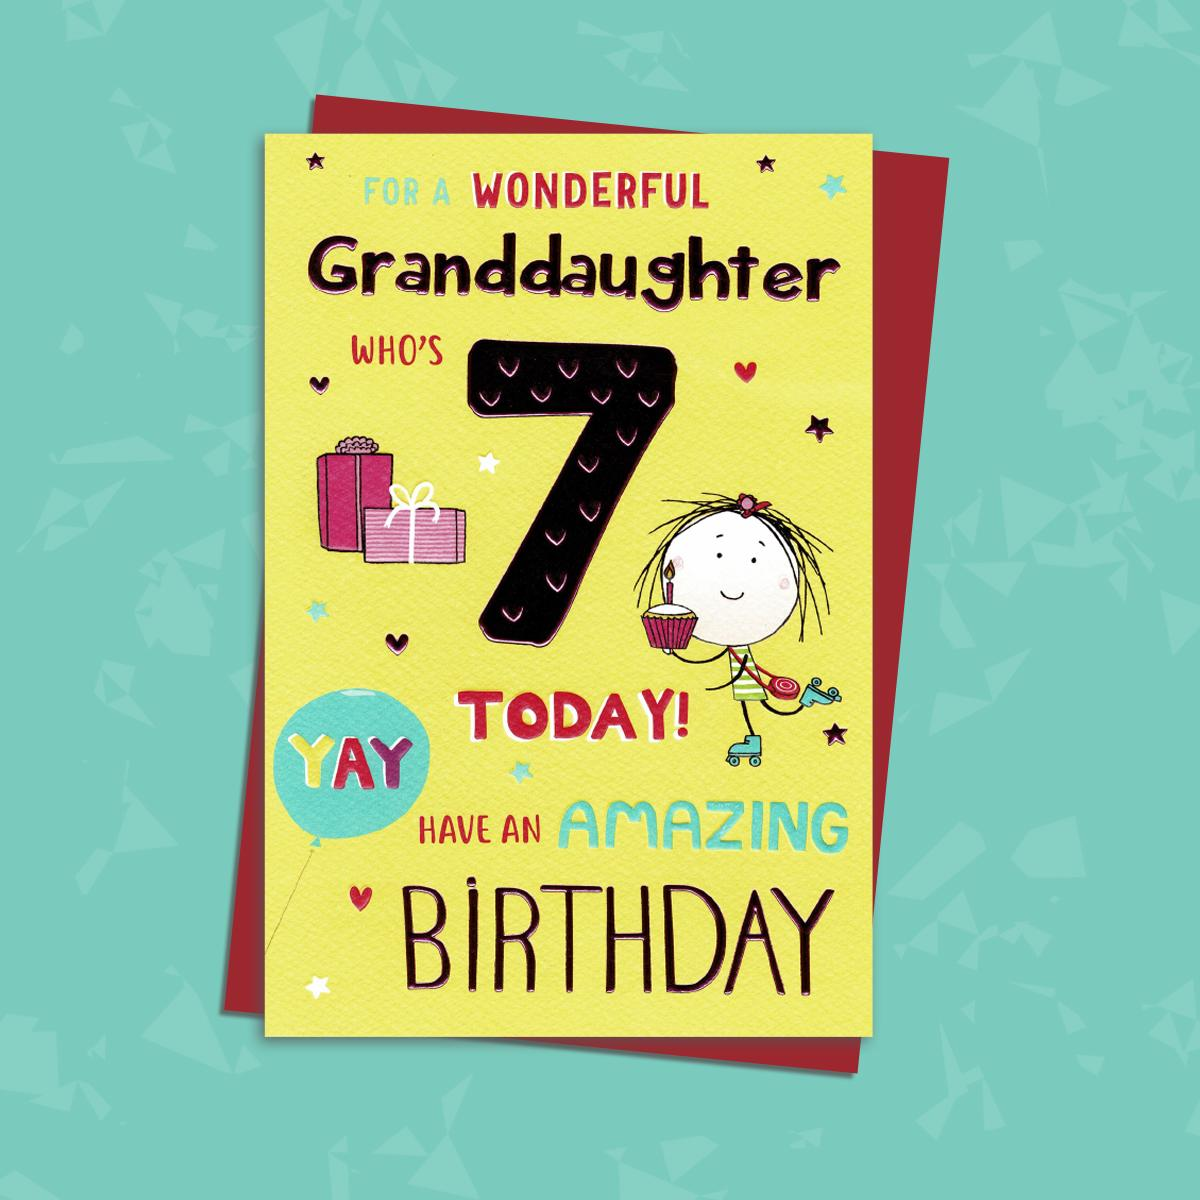 Granddaughter Age 7 Birthday Card Sitting On A Display Shelf